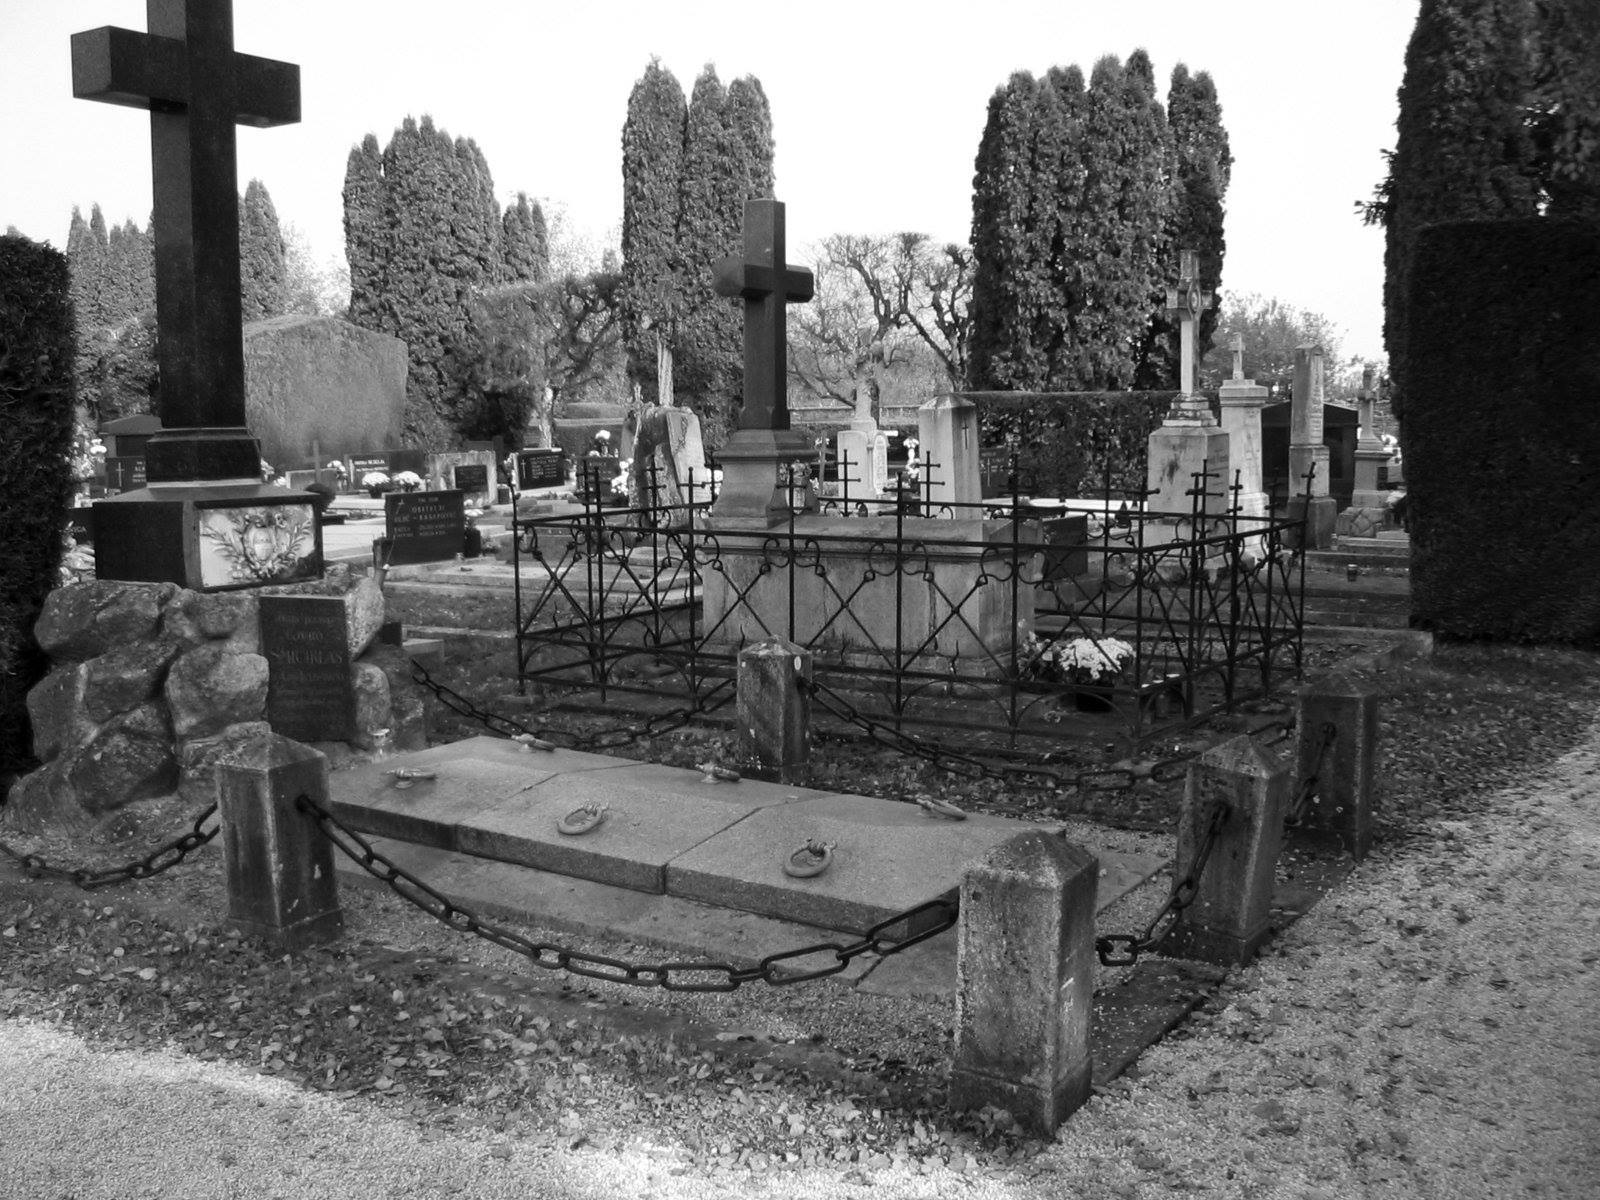 black and white image of a cemetery with raised tombs